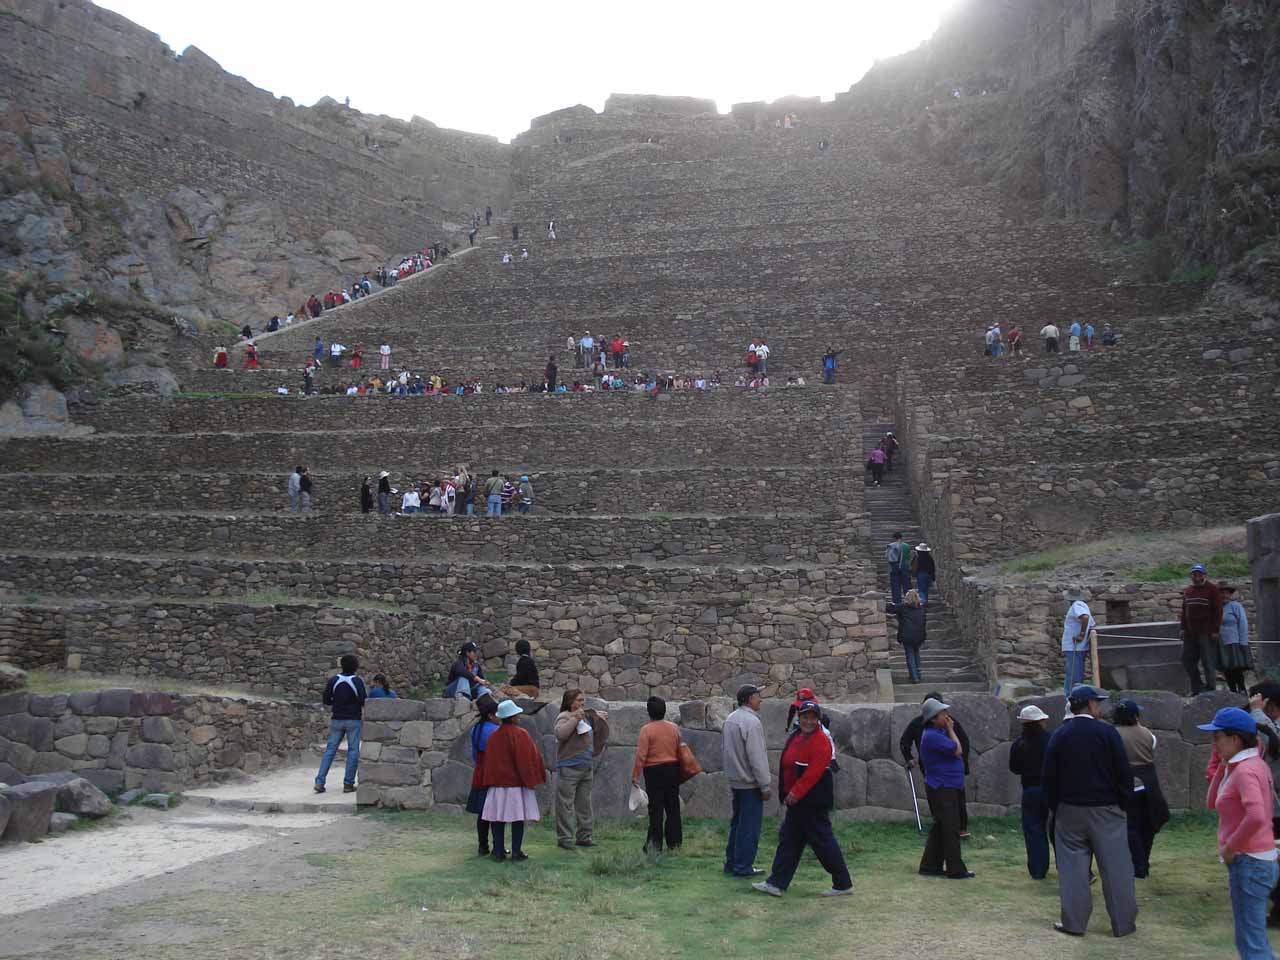 Going up the steps of the ruins by Ollantaytambo